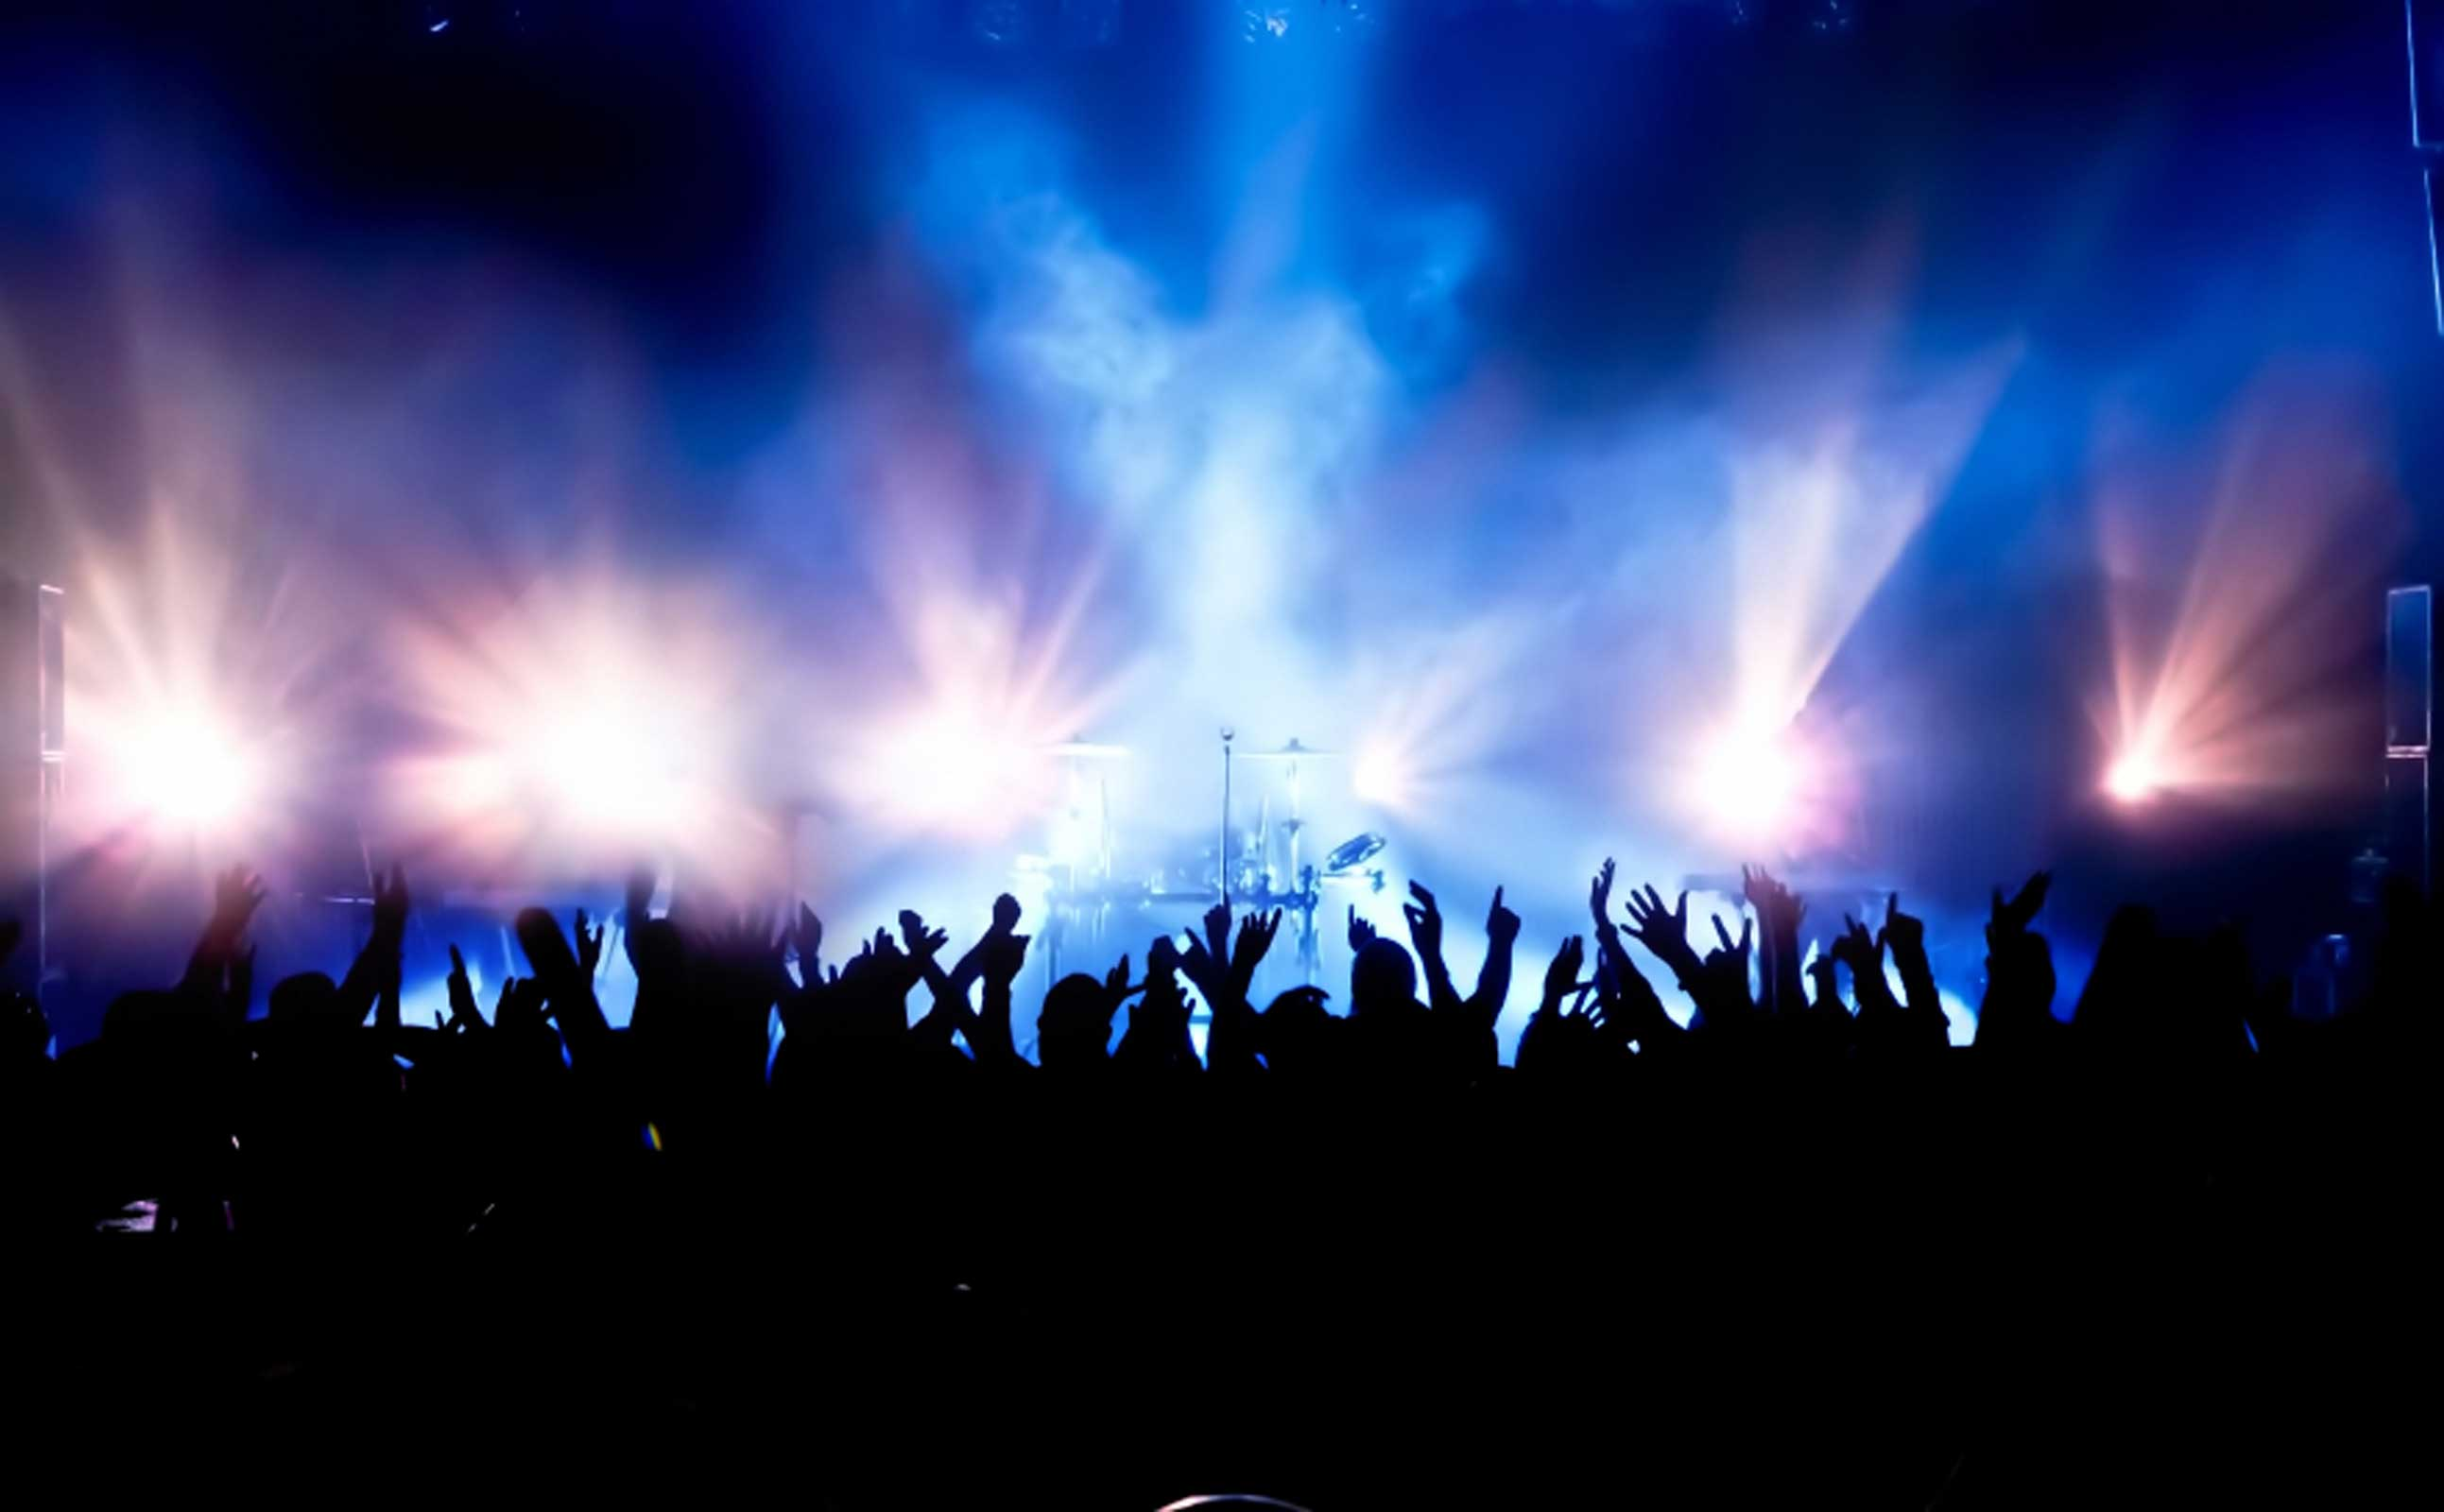 Concert Crowd From Stage Background Images Pictures   Becuo 2586x1600